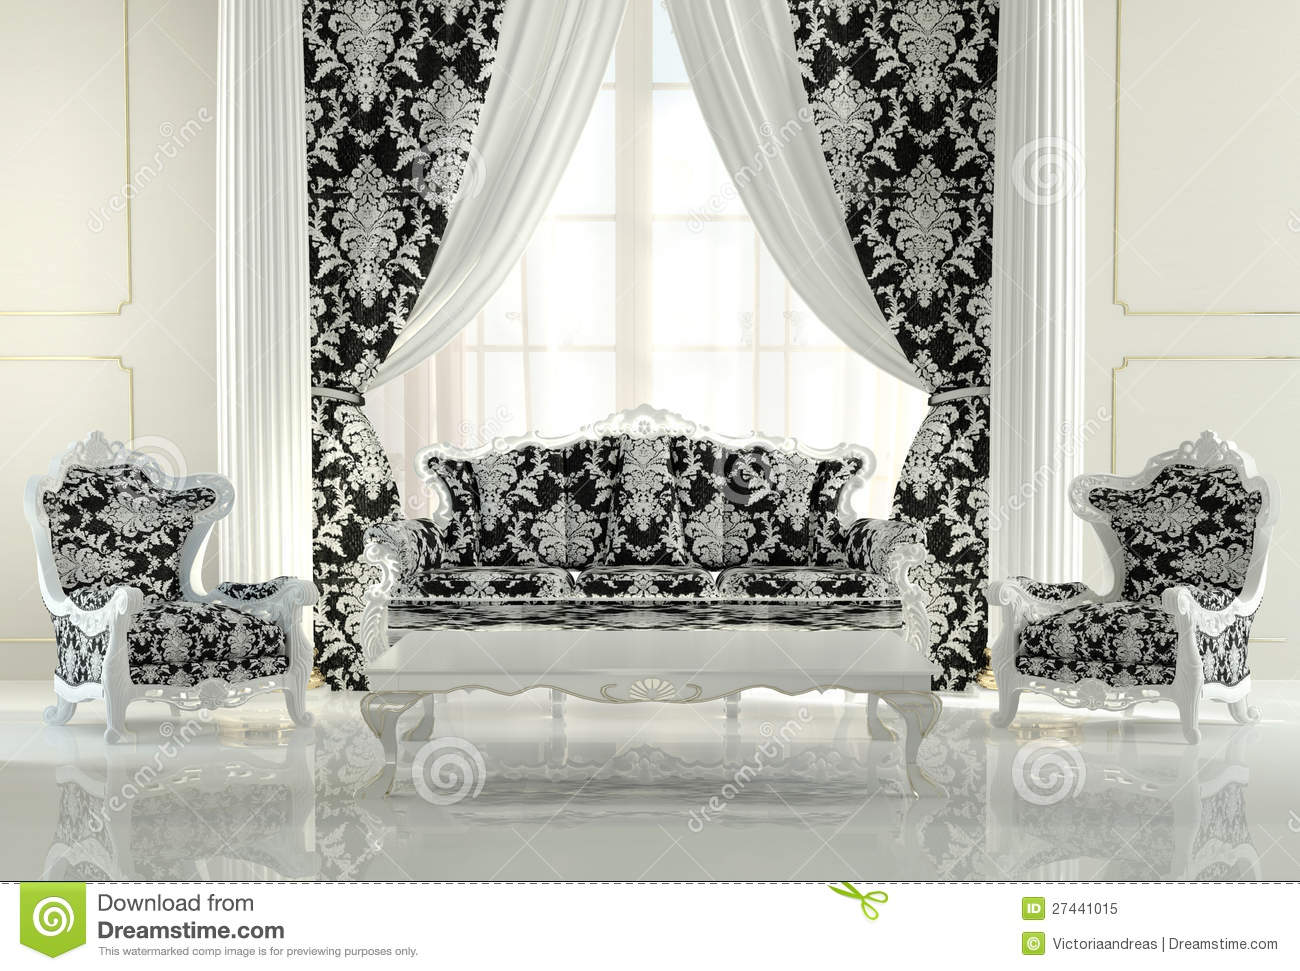 Affordable Modern Furniture In Baroque Design Interior Apartment Royal Sofa  And With Baroque Interior Design